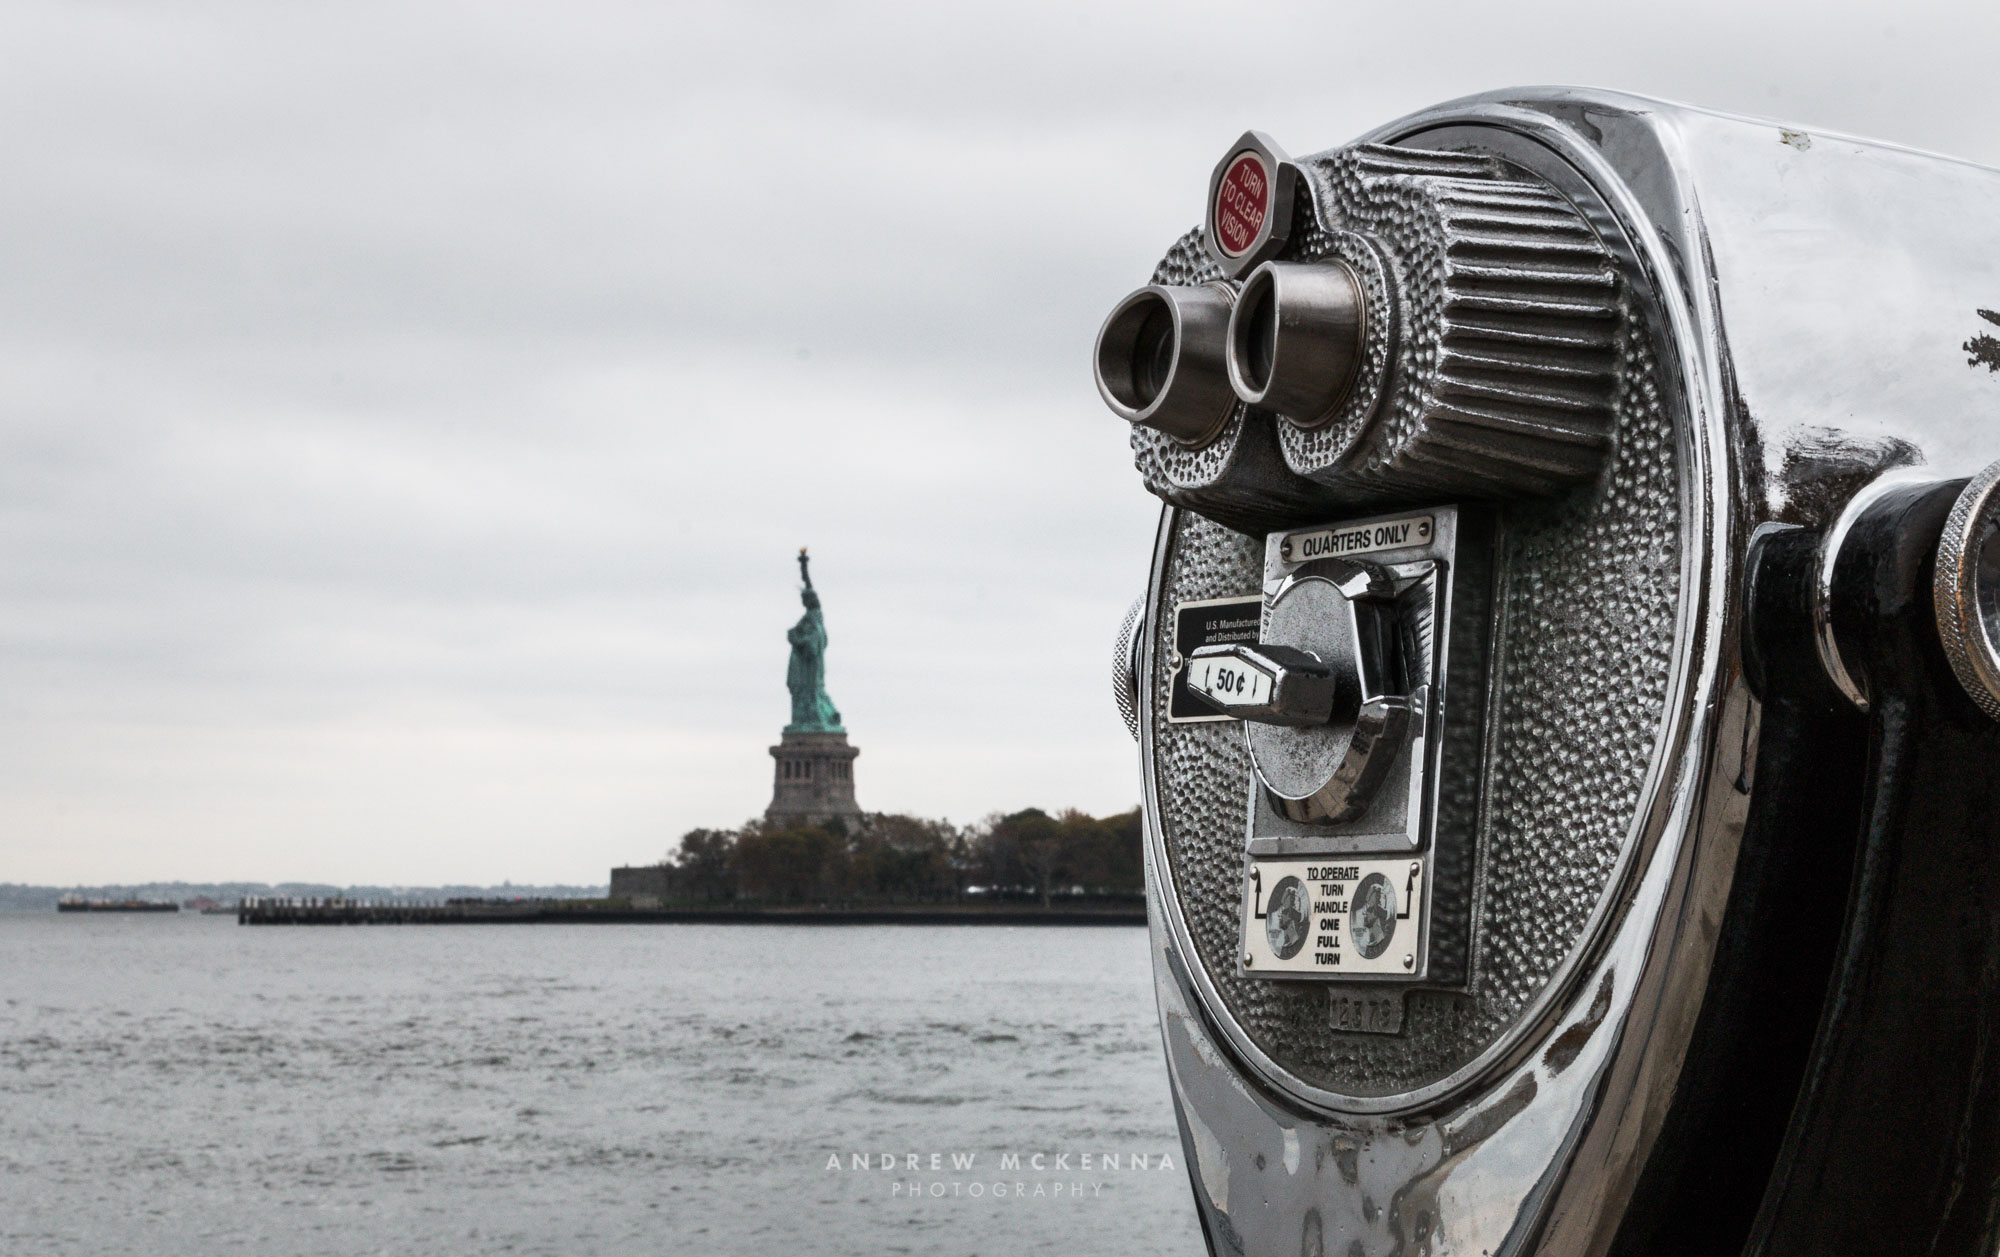 New York NYC Photographer Travel photographer The stature of lib